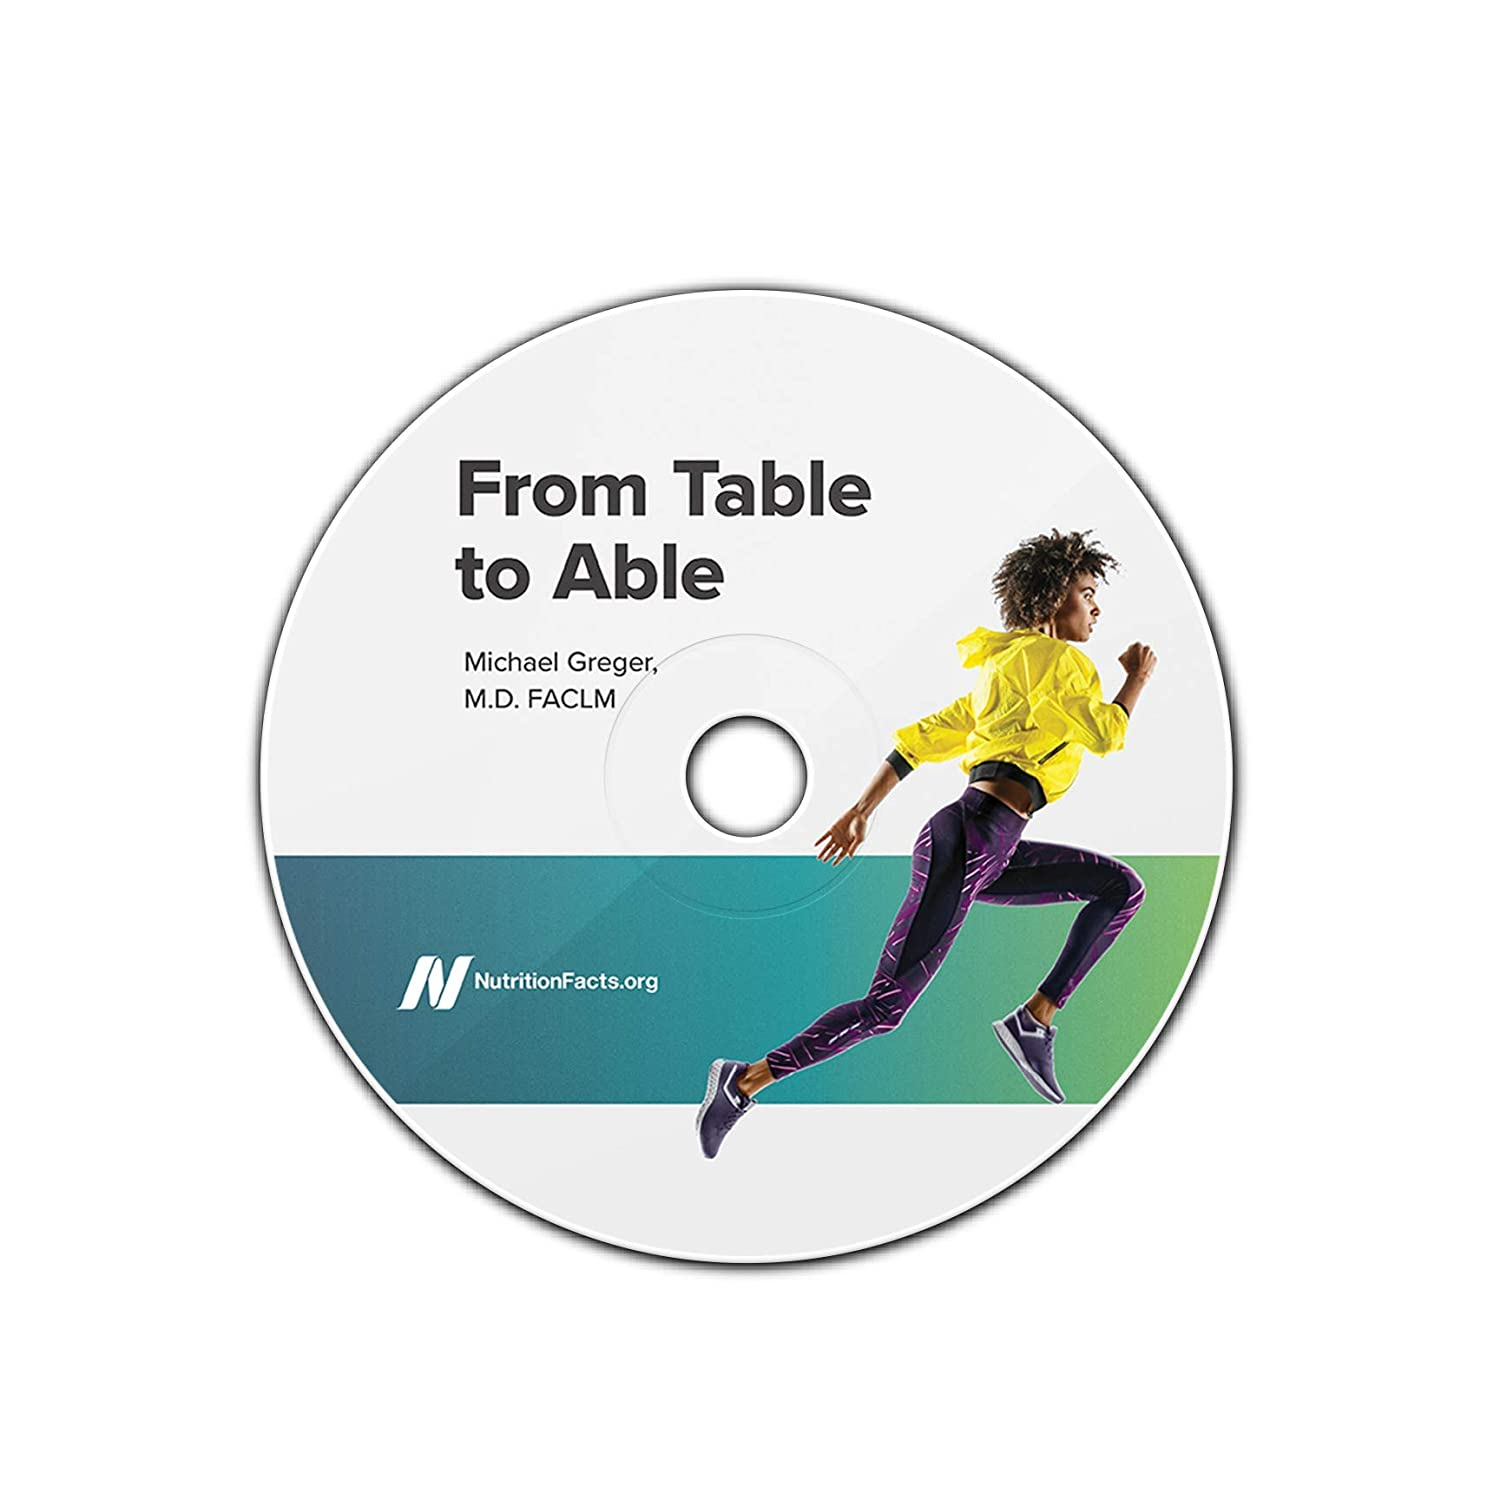 From Table to Able: Combating Disabling Diseases with Food - Dr. Greger's Evidenced-Based Nutrition DVD Series